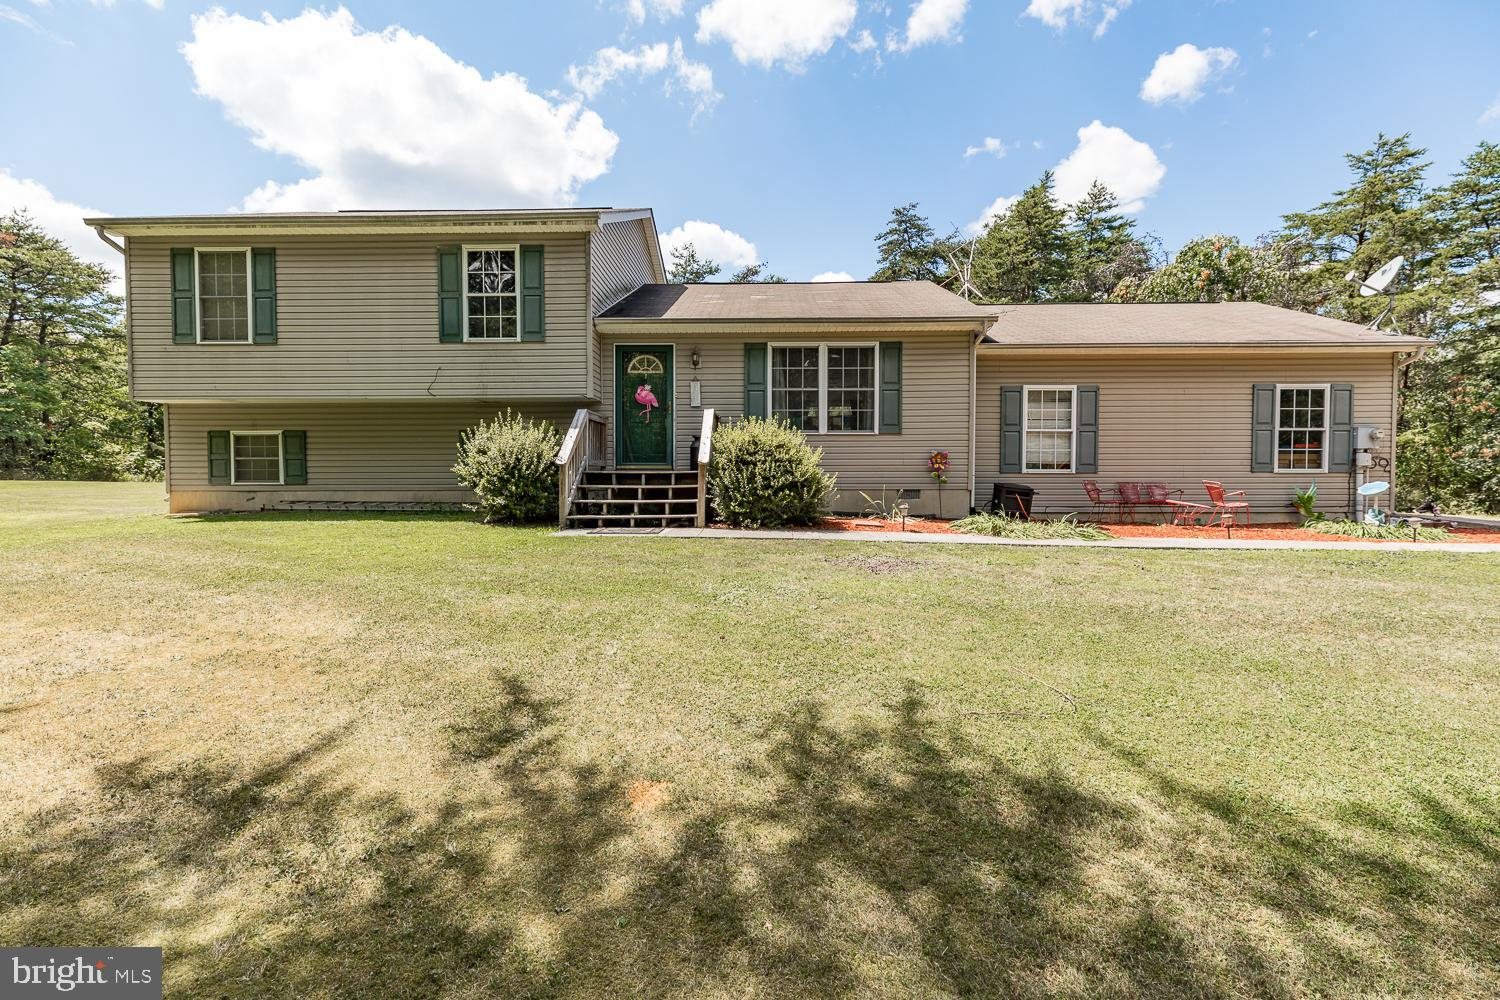 Peaceful and tranquil surroundings is what you will find in this charming home nestled in the woods.